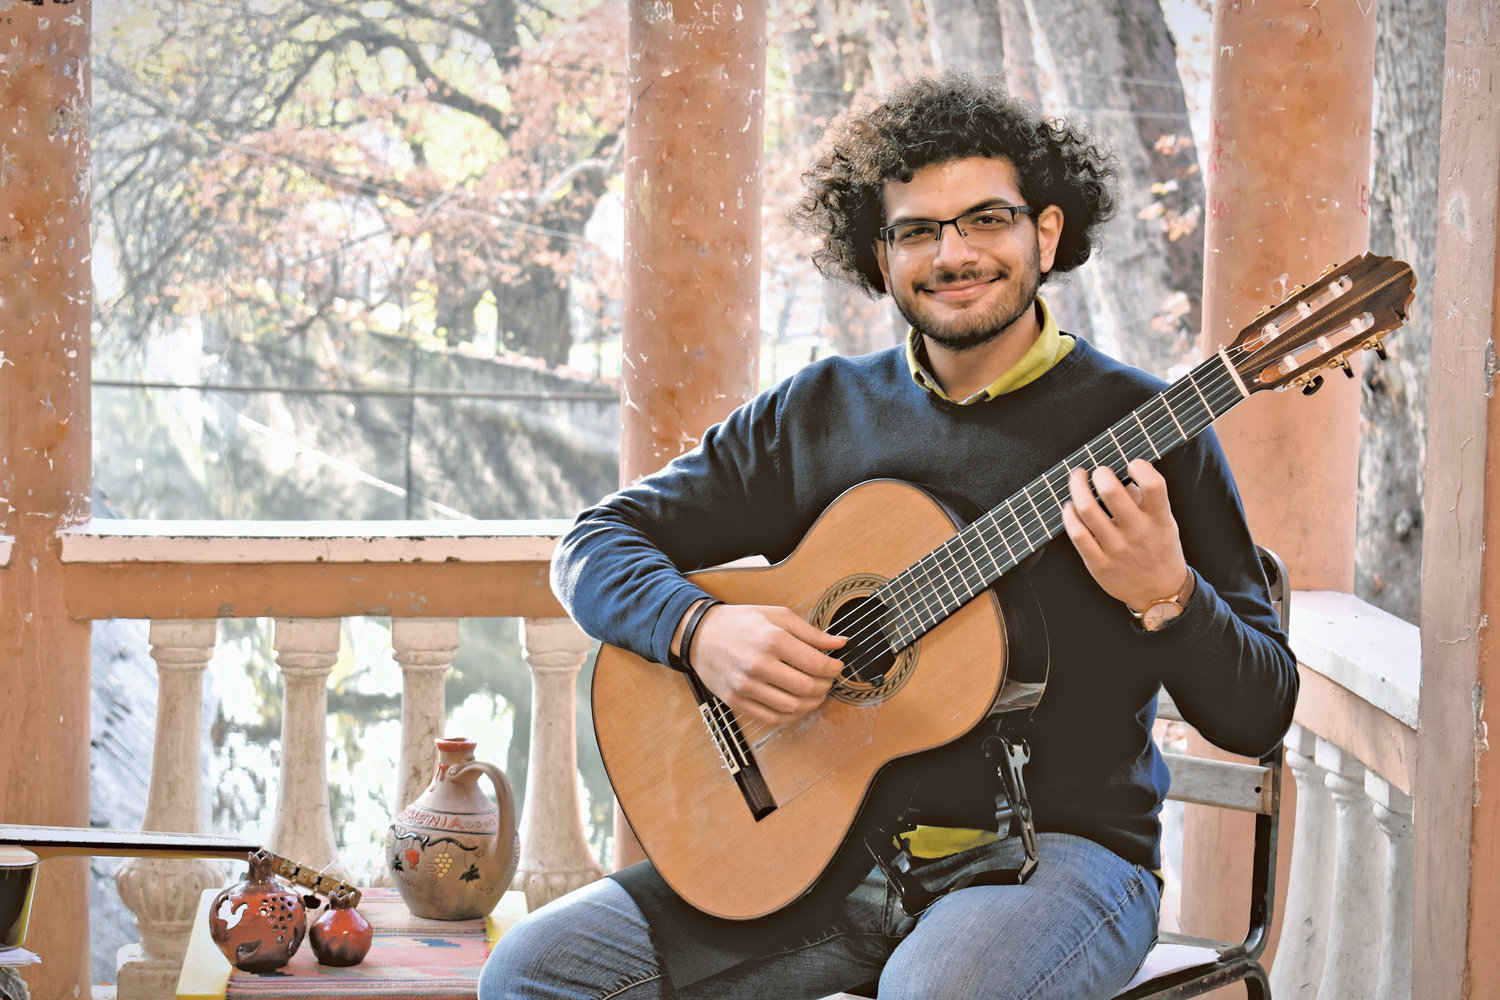 Saro Babikian began his musical career in Damascus, but he emigrated to California at the onset of the Syrian civil war in 2012.